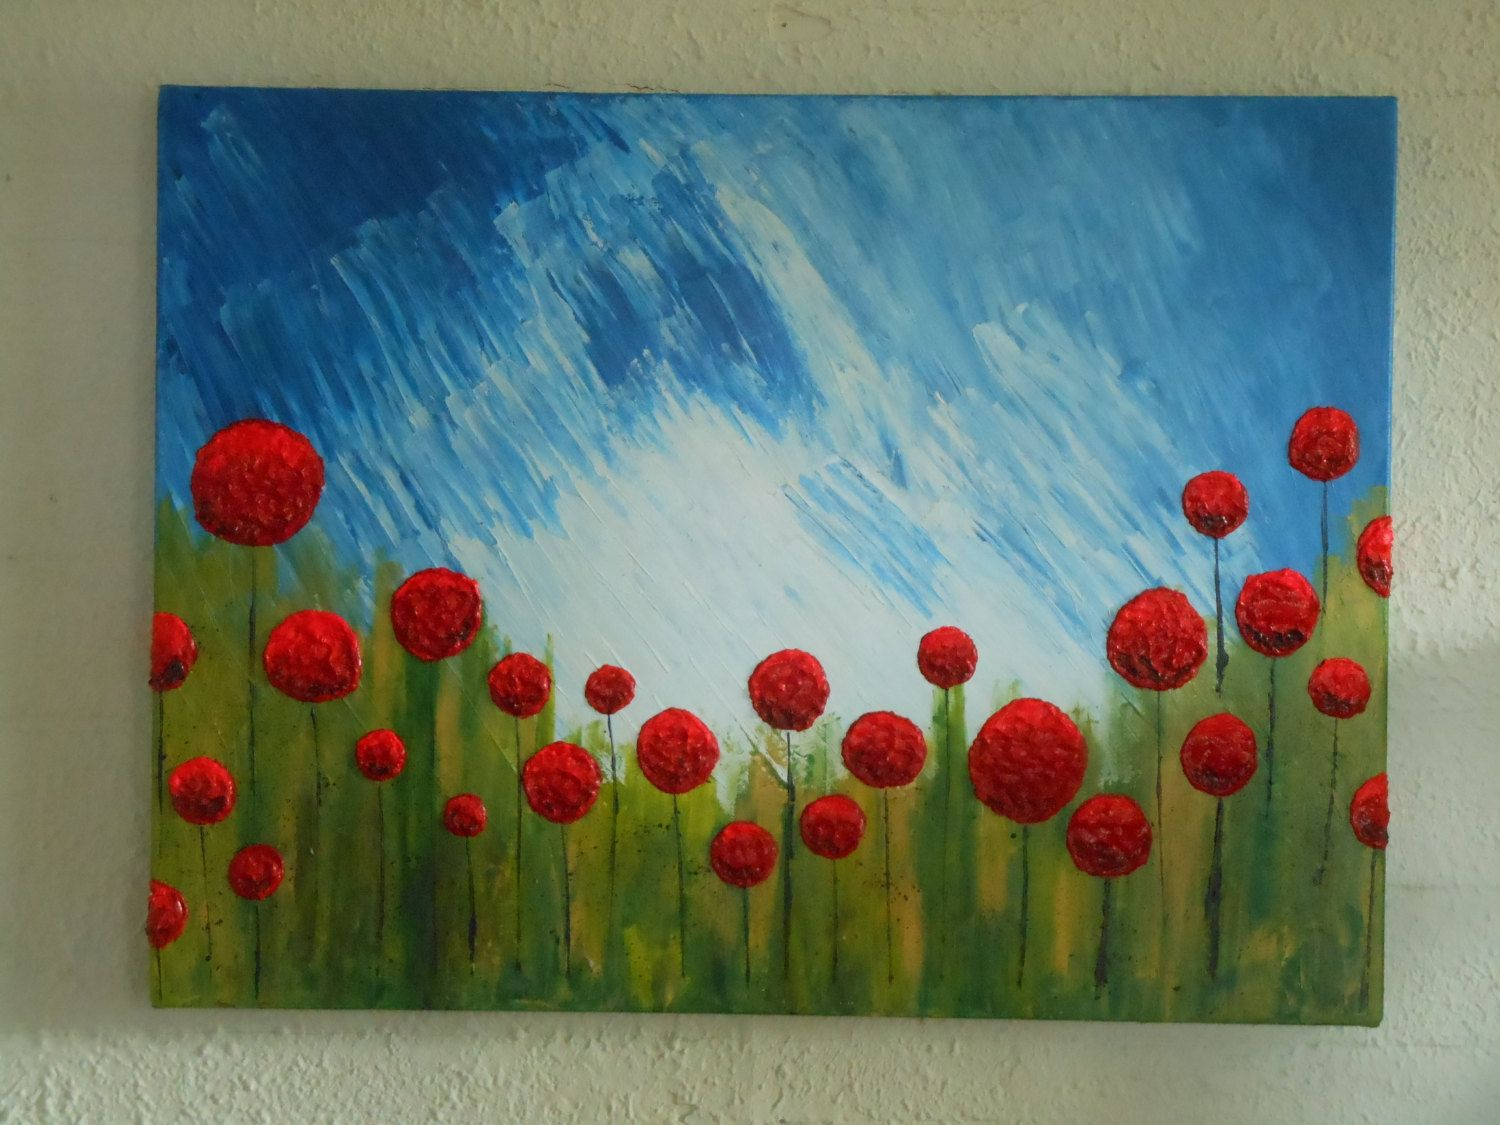 """Lollipop Pops on a Sunny Afternoon. Impressionism Palette Knife Painting. Size of Painting: 30"""" x 40"""". by NAWLINSGIRLDESIGNS on Etsy"""